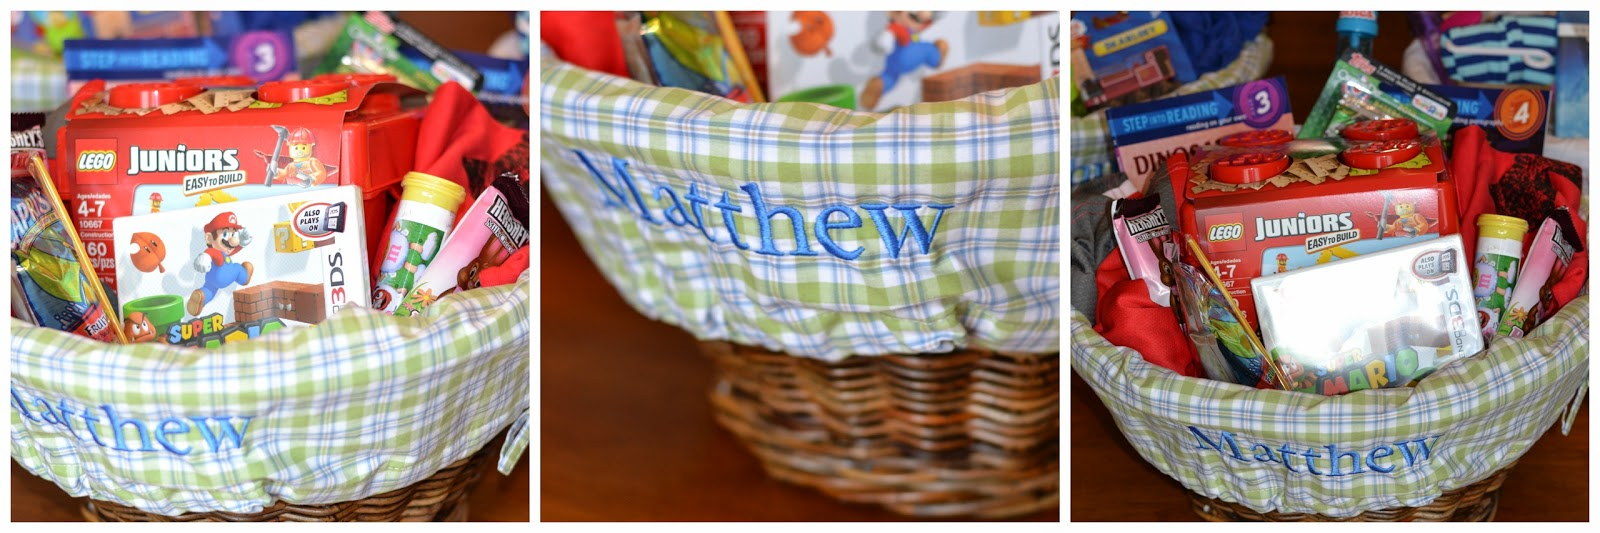 Happily a housewife 2014 easter baskets matthews basket 6 year old boy negle Image collections